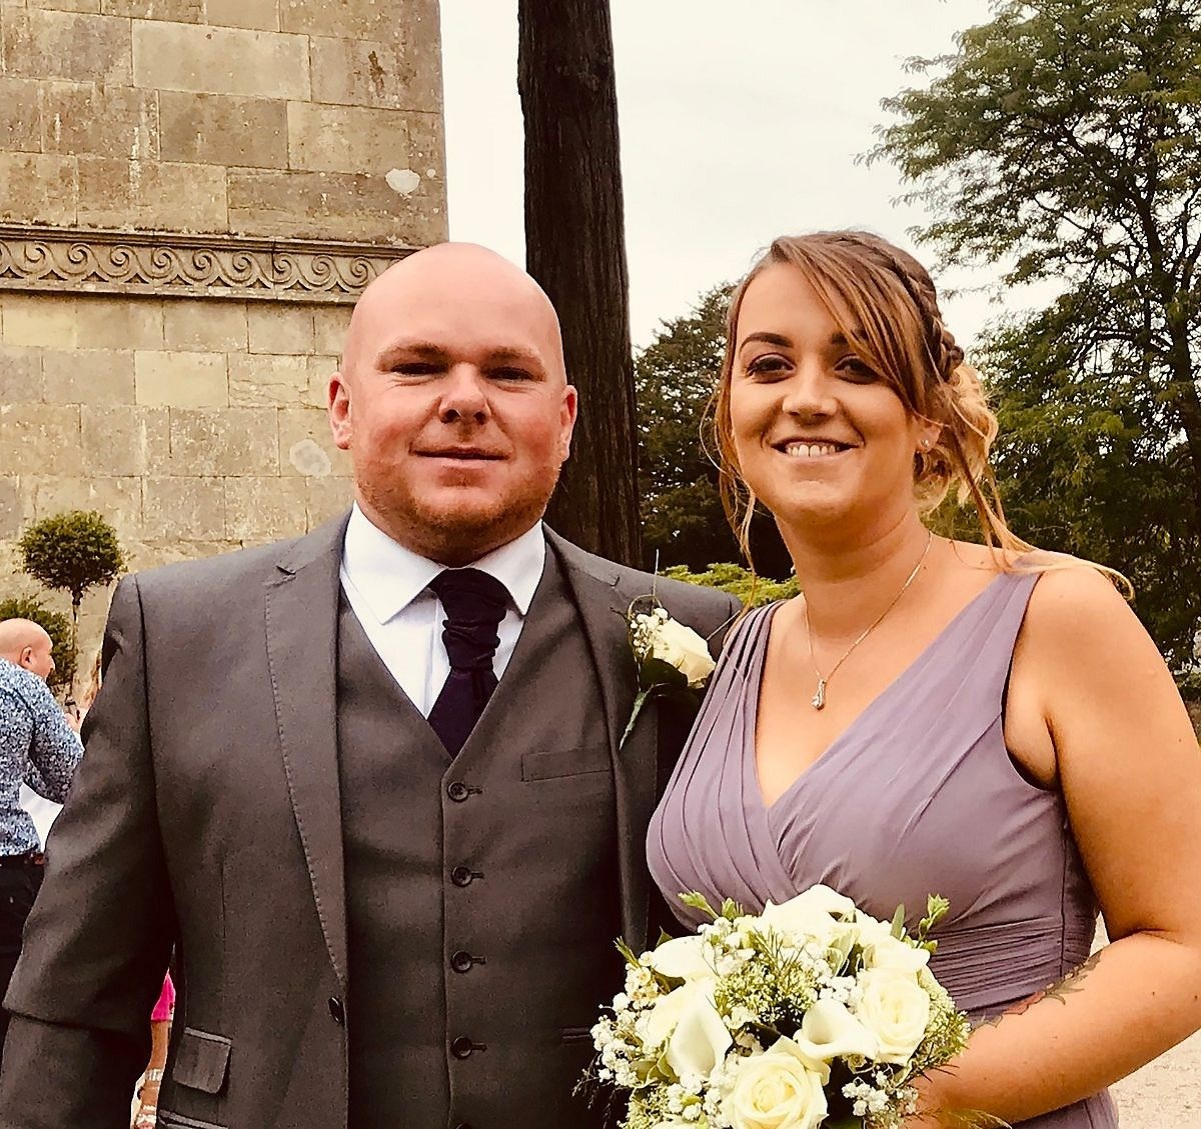 Bethan and Arwel - tying the knot